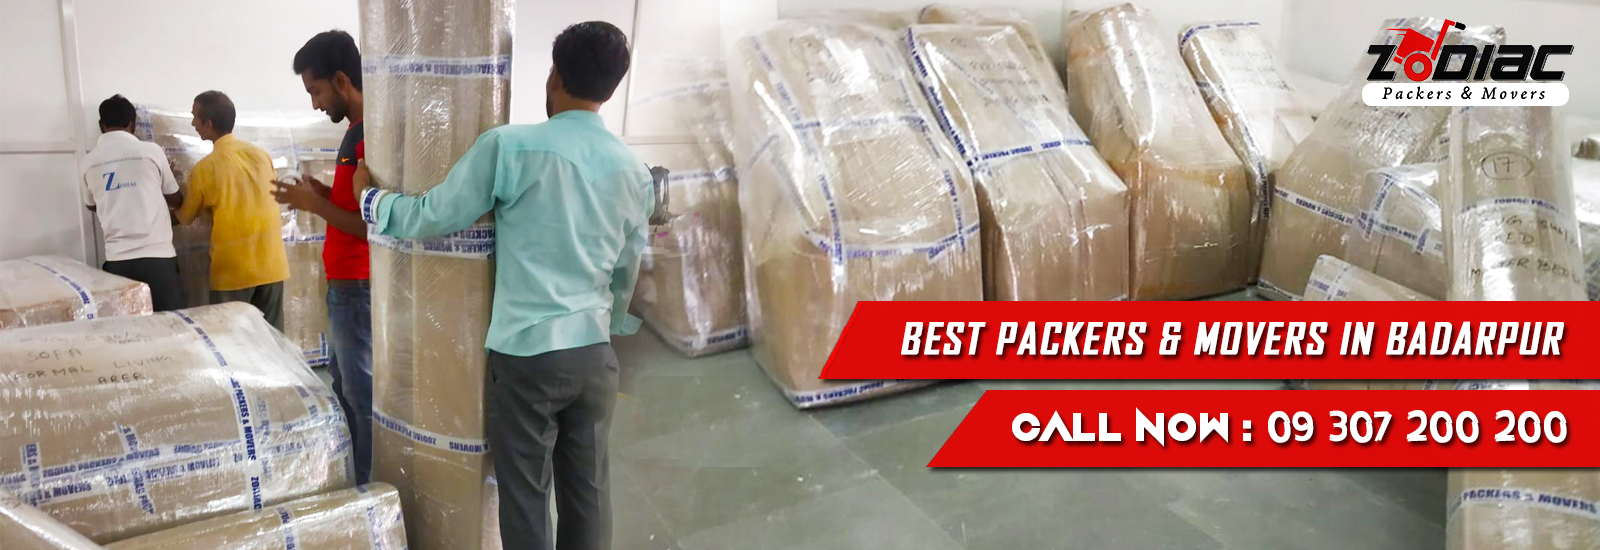 Packers and Movers in Badarpur